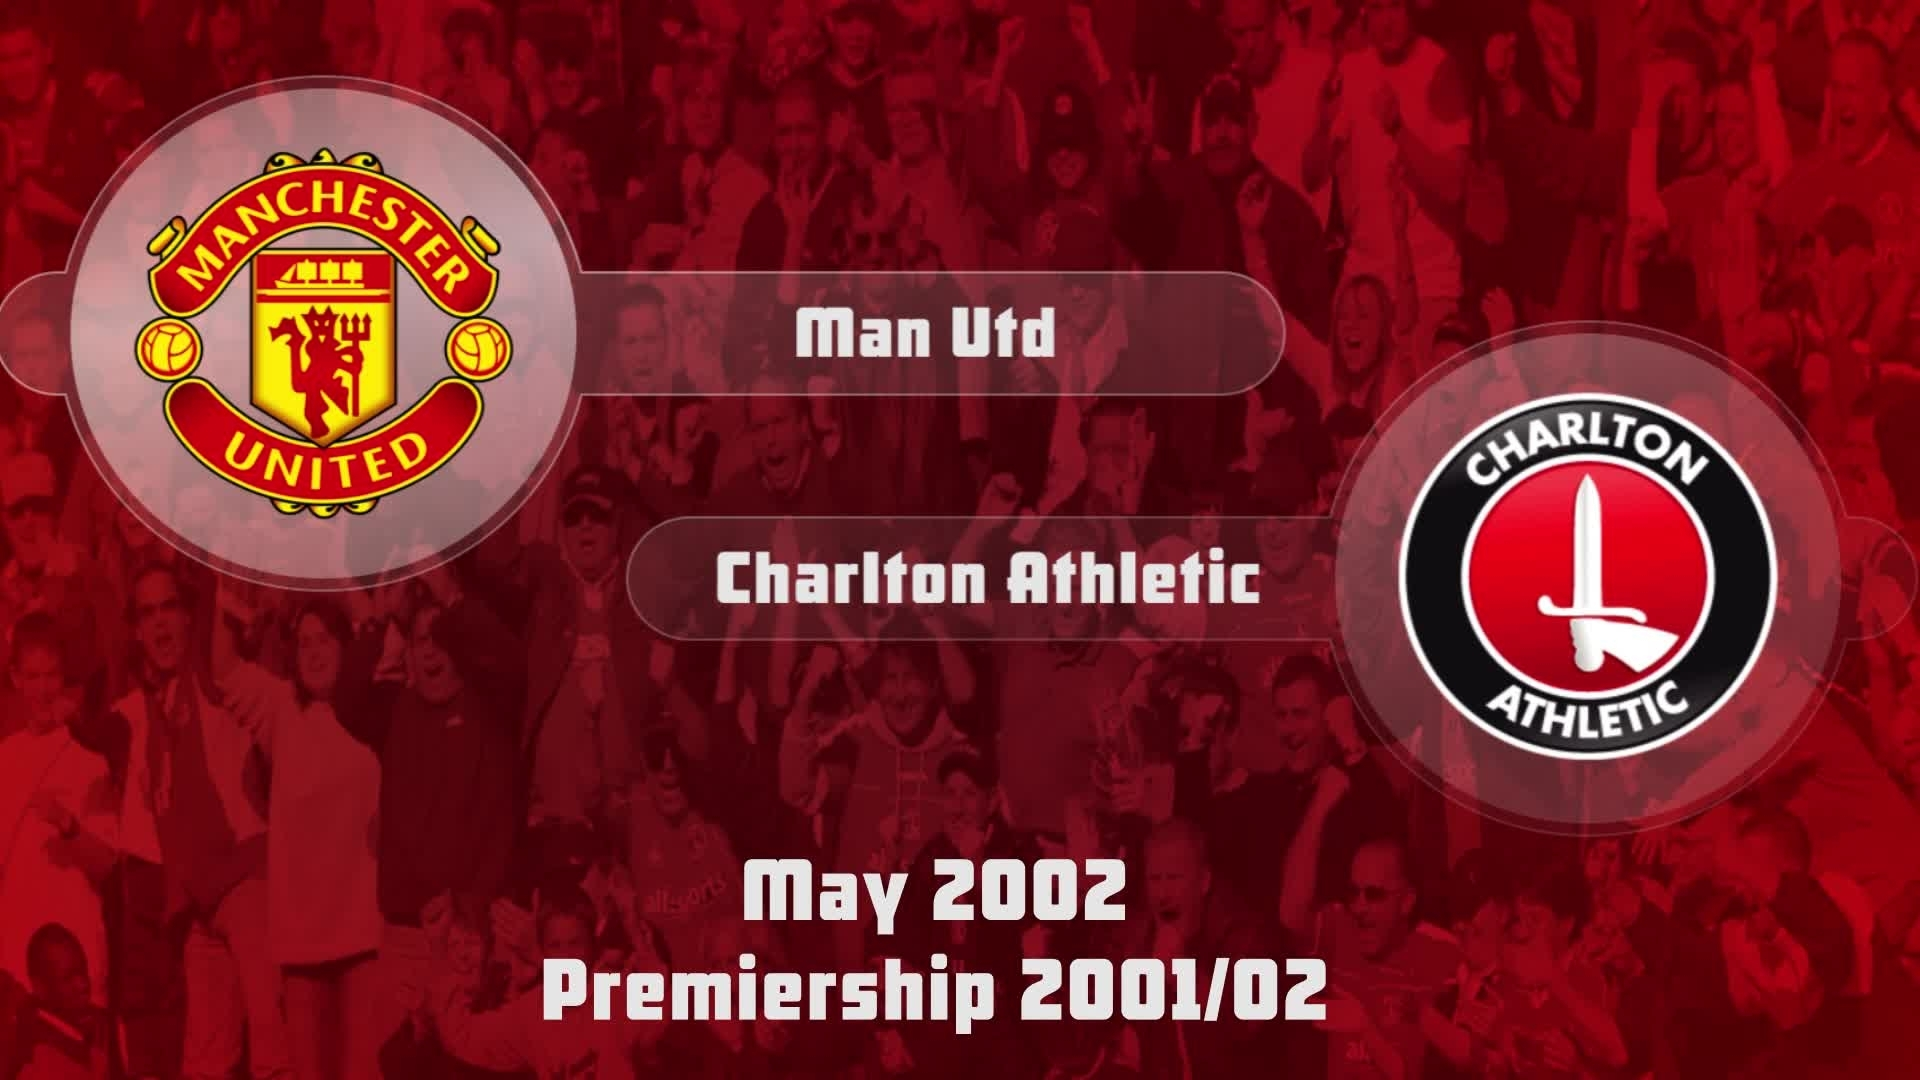 43 HIGHLIGHTS | Man Utd 0 Charlton 0 (May 2002)